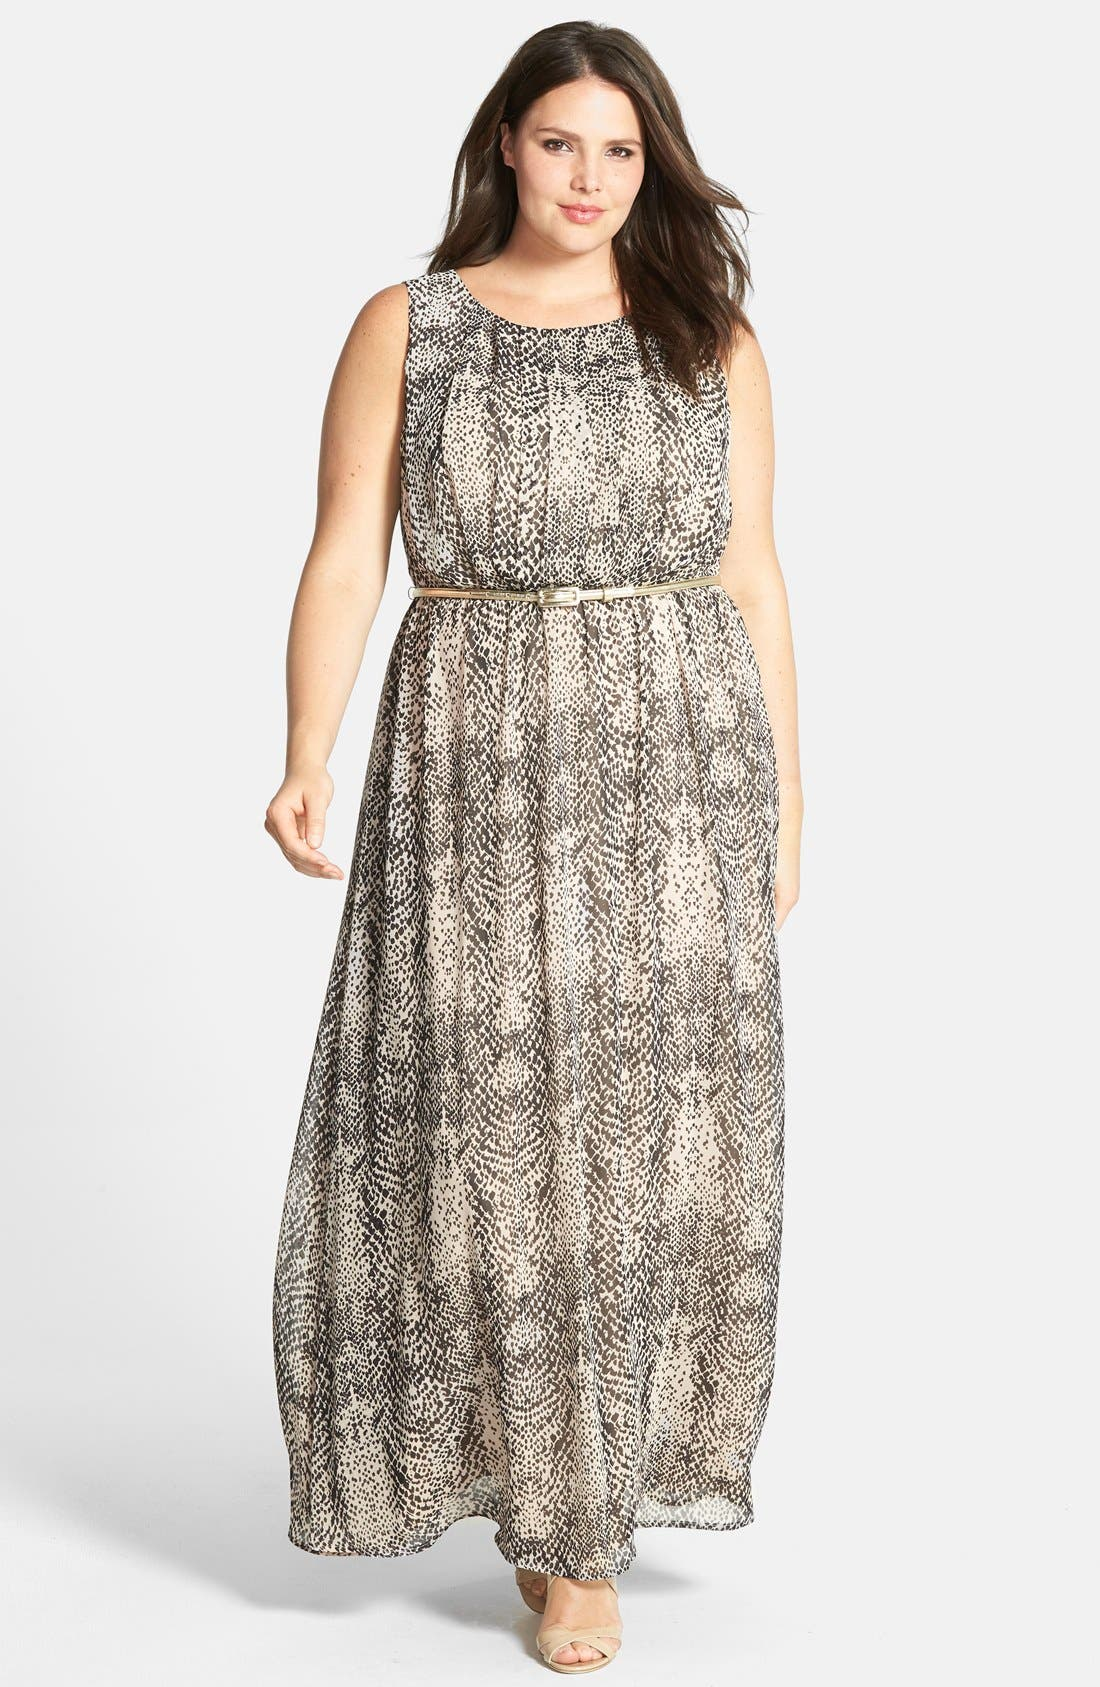 Alternate Image 1 Selected - Eliza J Floral Maxi Dress (Plus Size)